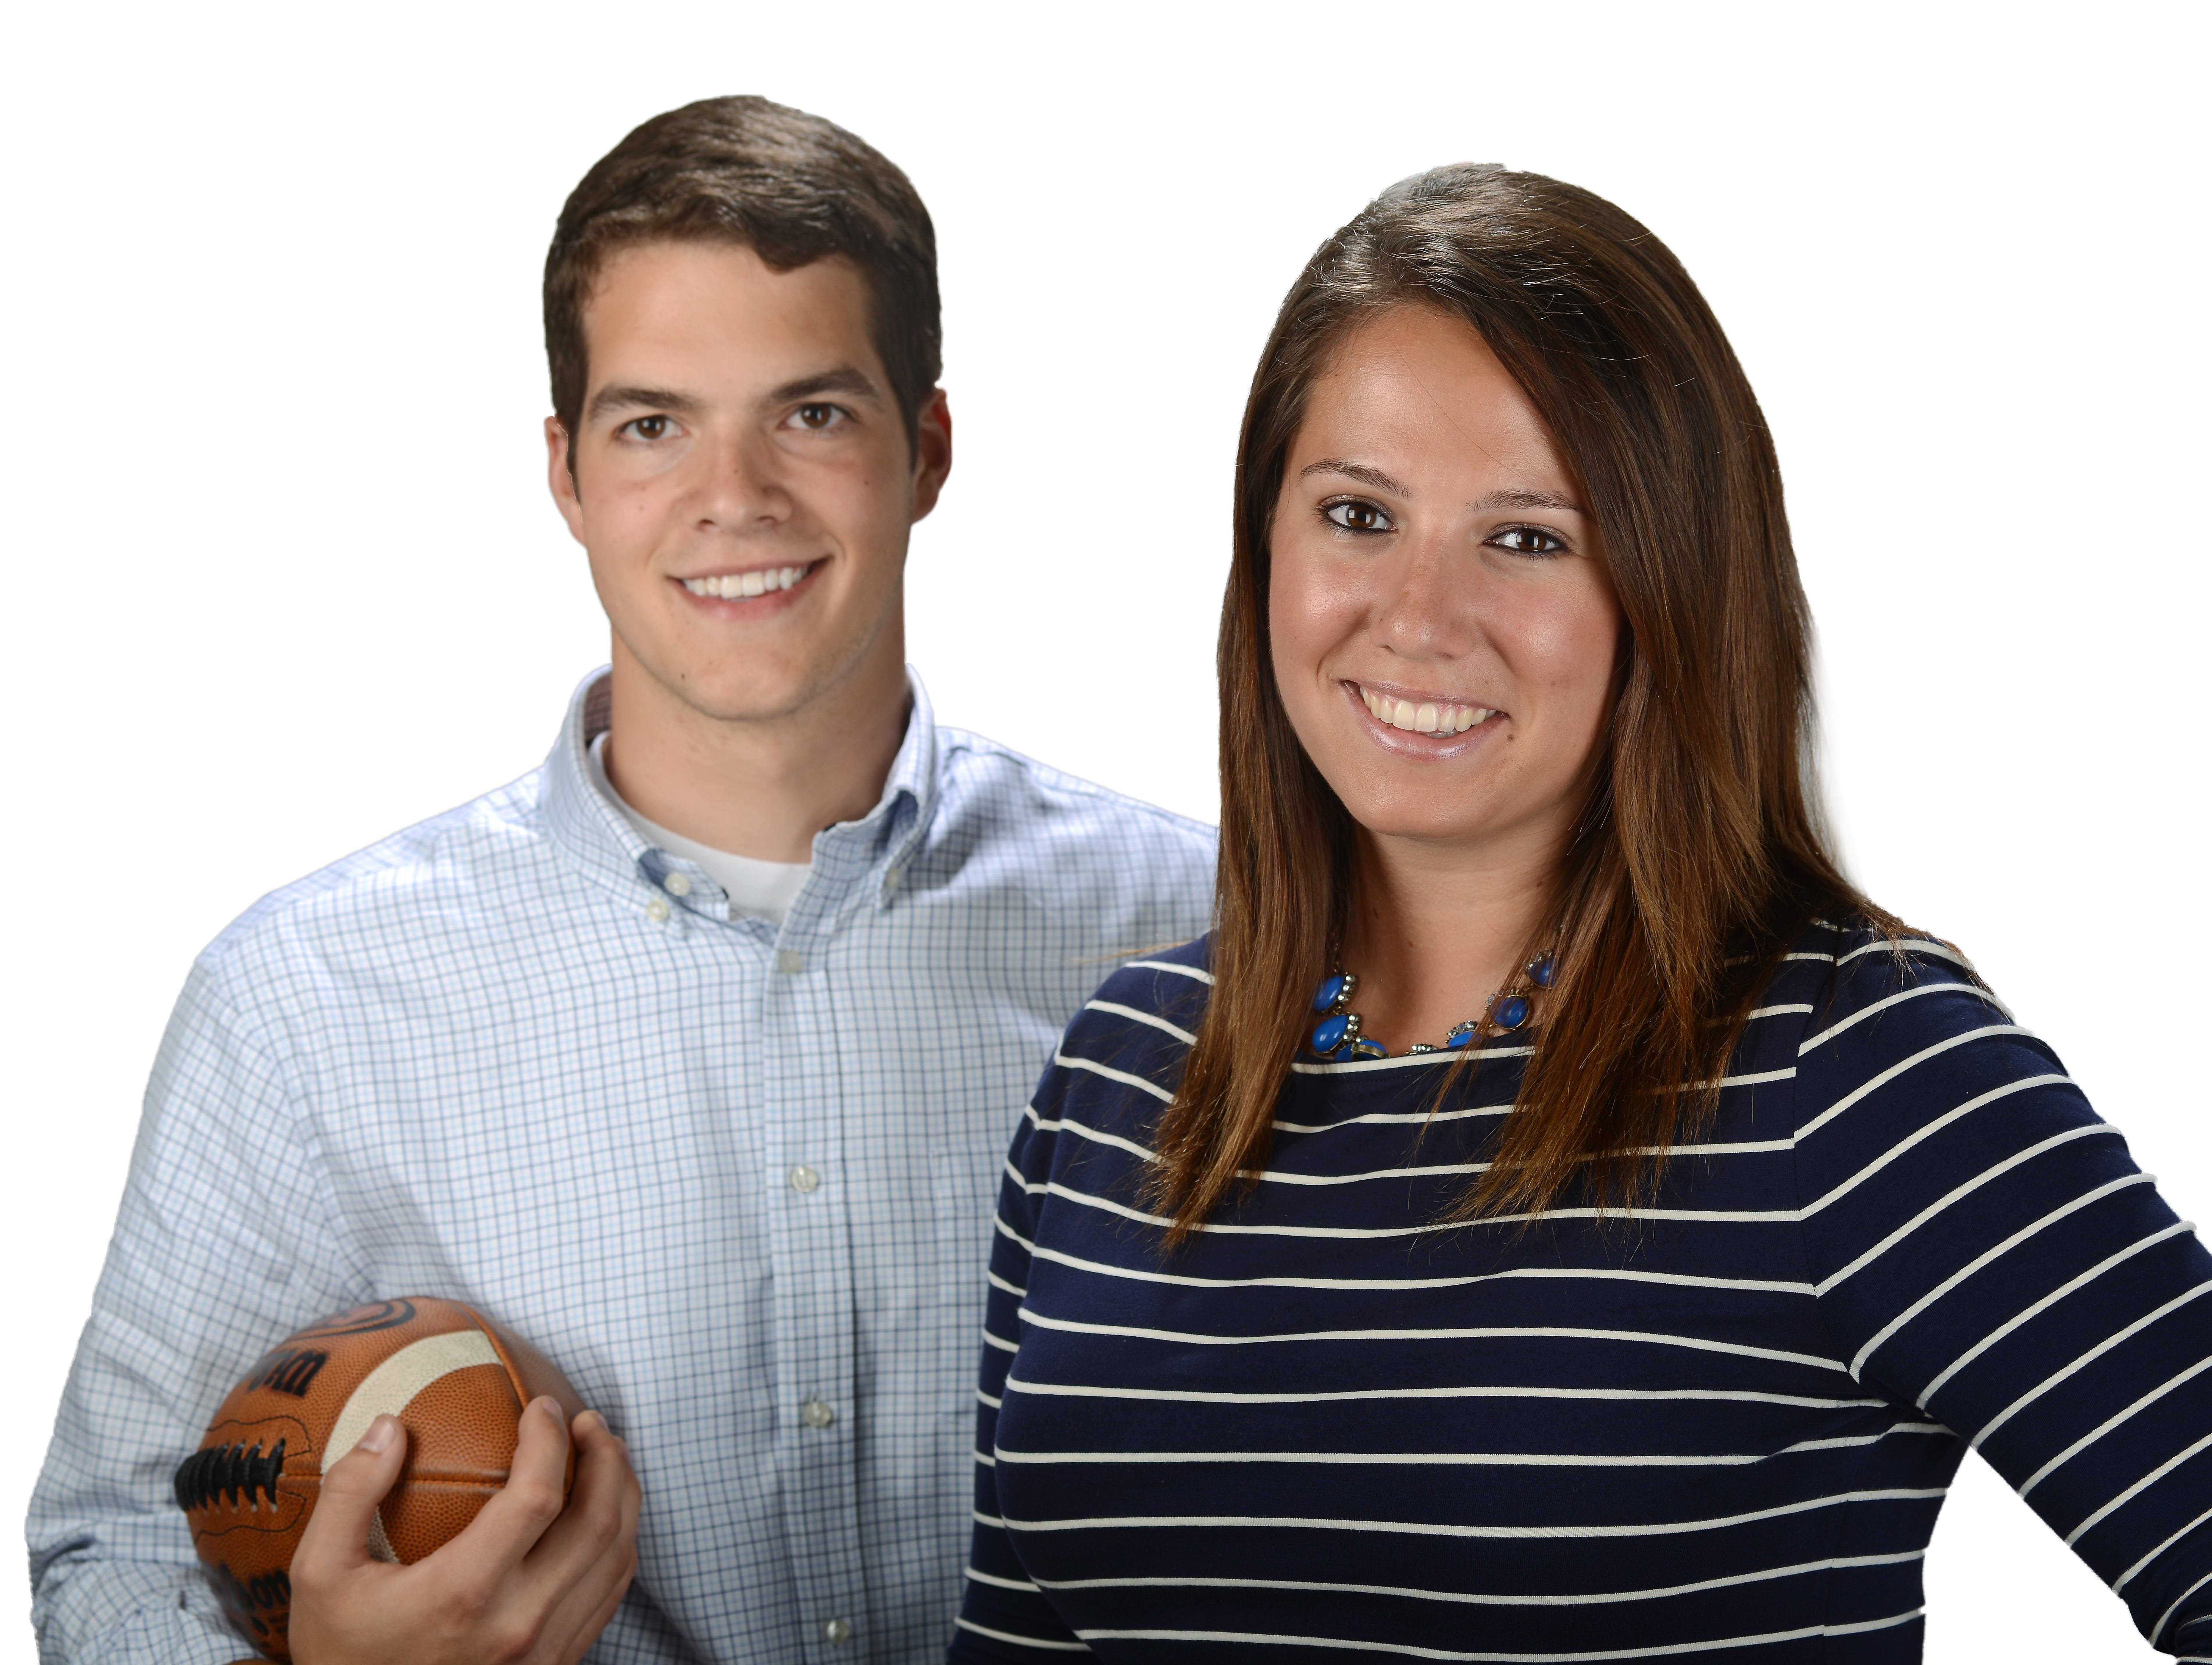 The Clarion-Ledger's Riley Blevins and Courtney Cronin will be teaming up on sports stories.